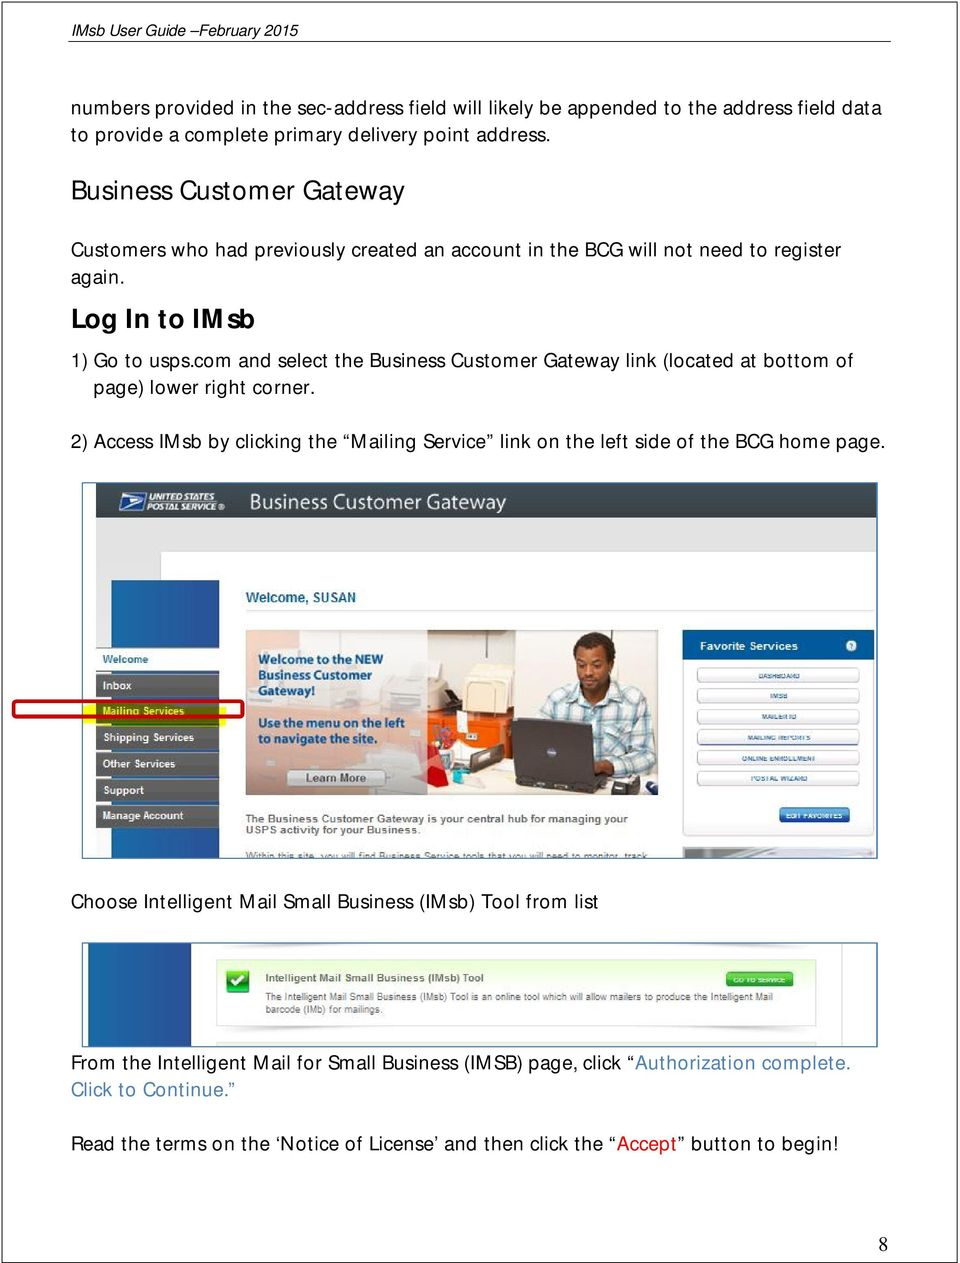 com and select the Business Customer Gateway link (located at bottom of page) lower right corner.